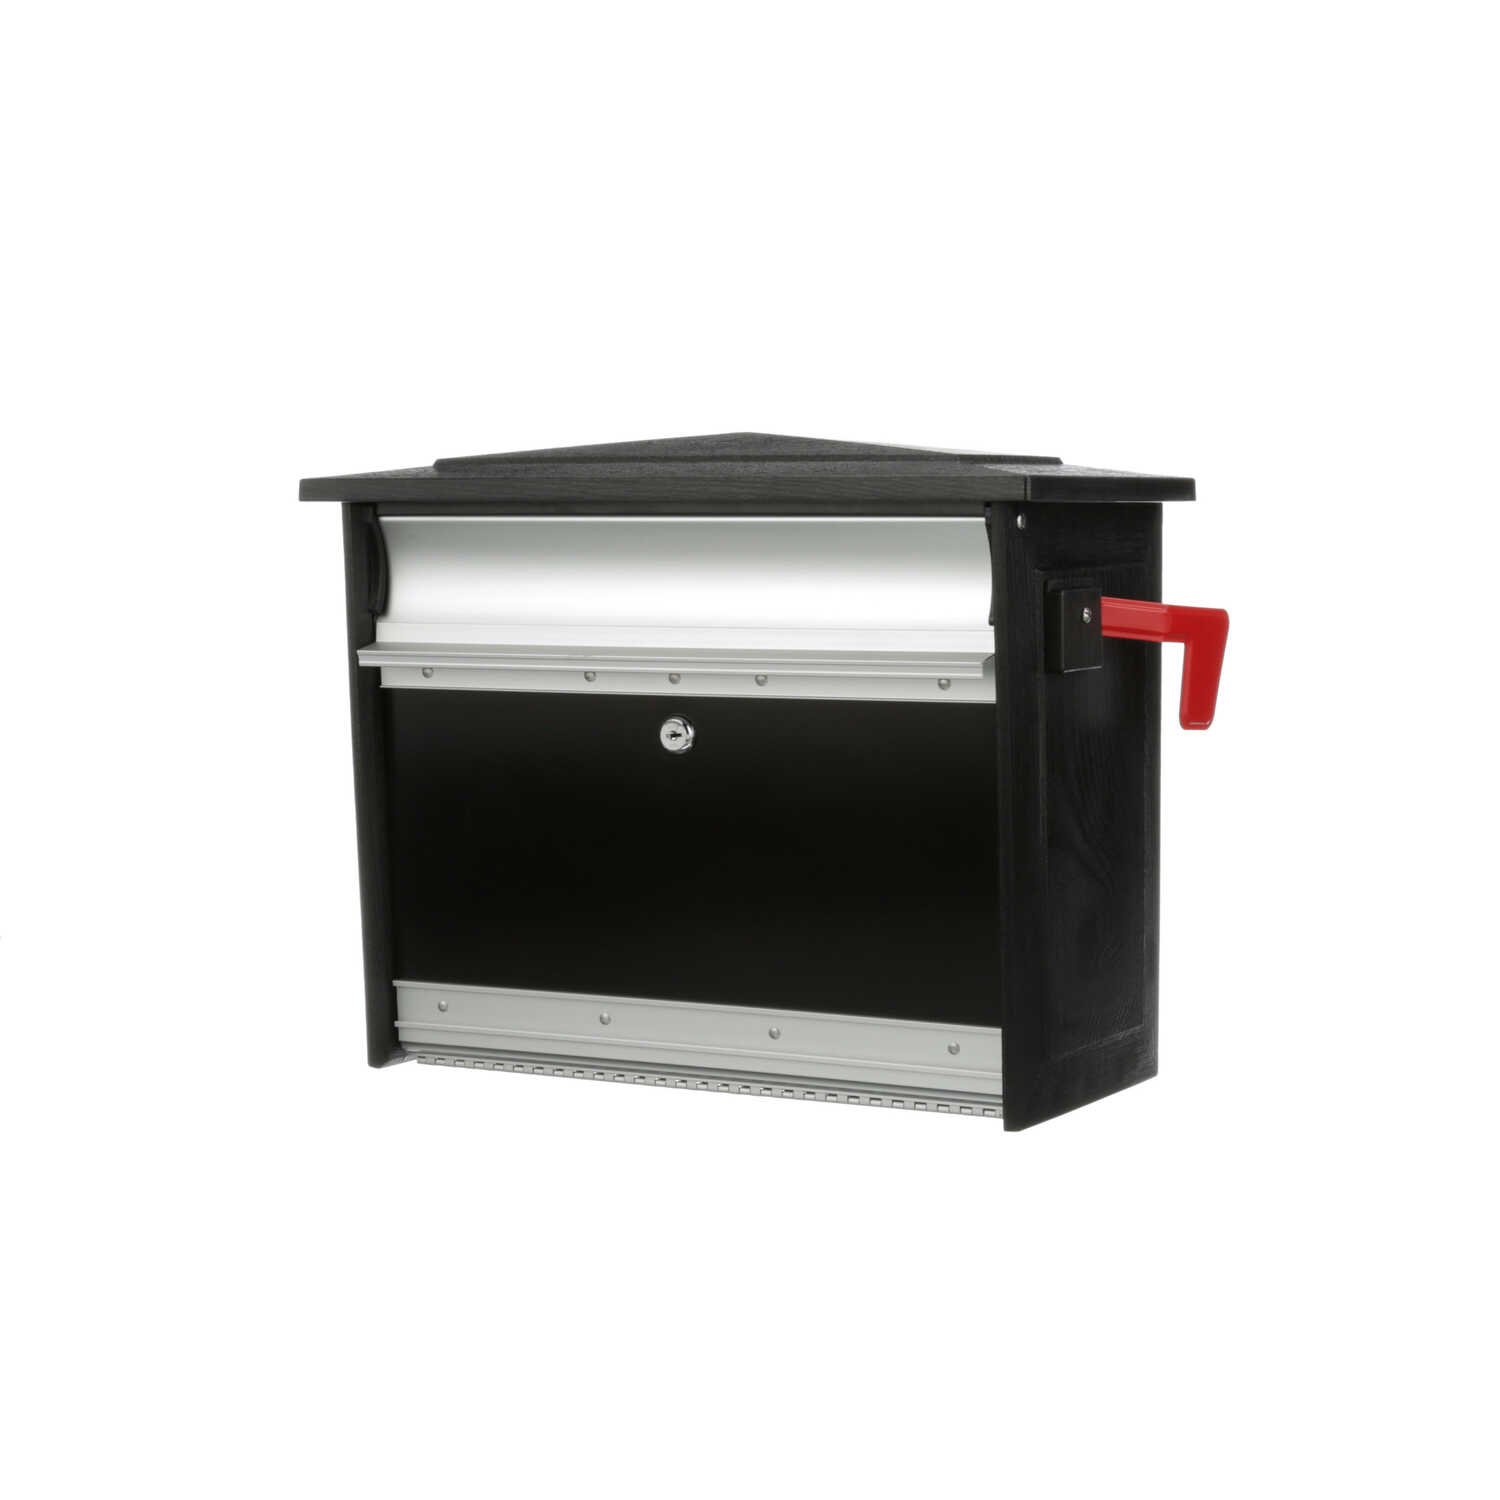 Gibraltar Mailboxes  Steel  Wall-Mounted  Mailsafe  Lockable Mailbox  16-7/8 in. L x 8-1/2 in. W x 1